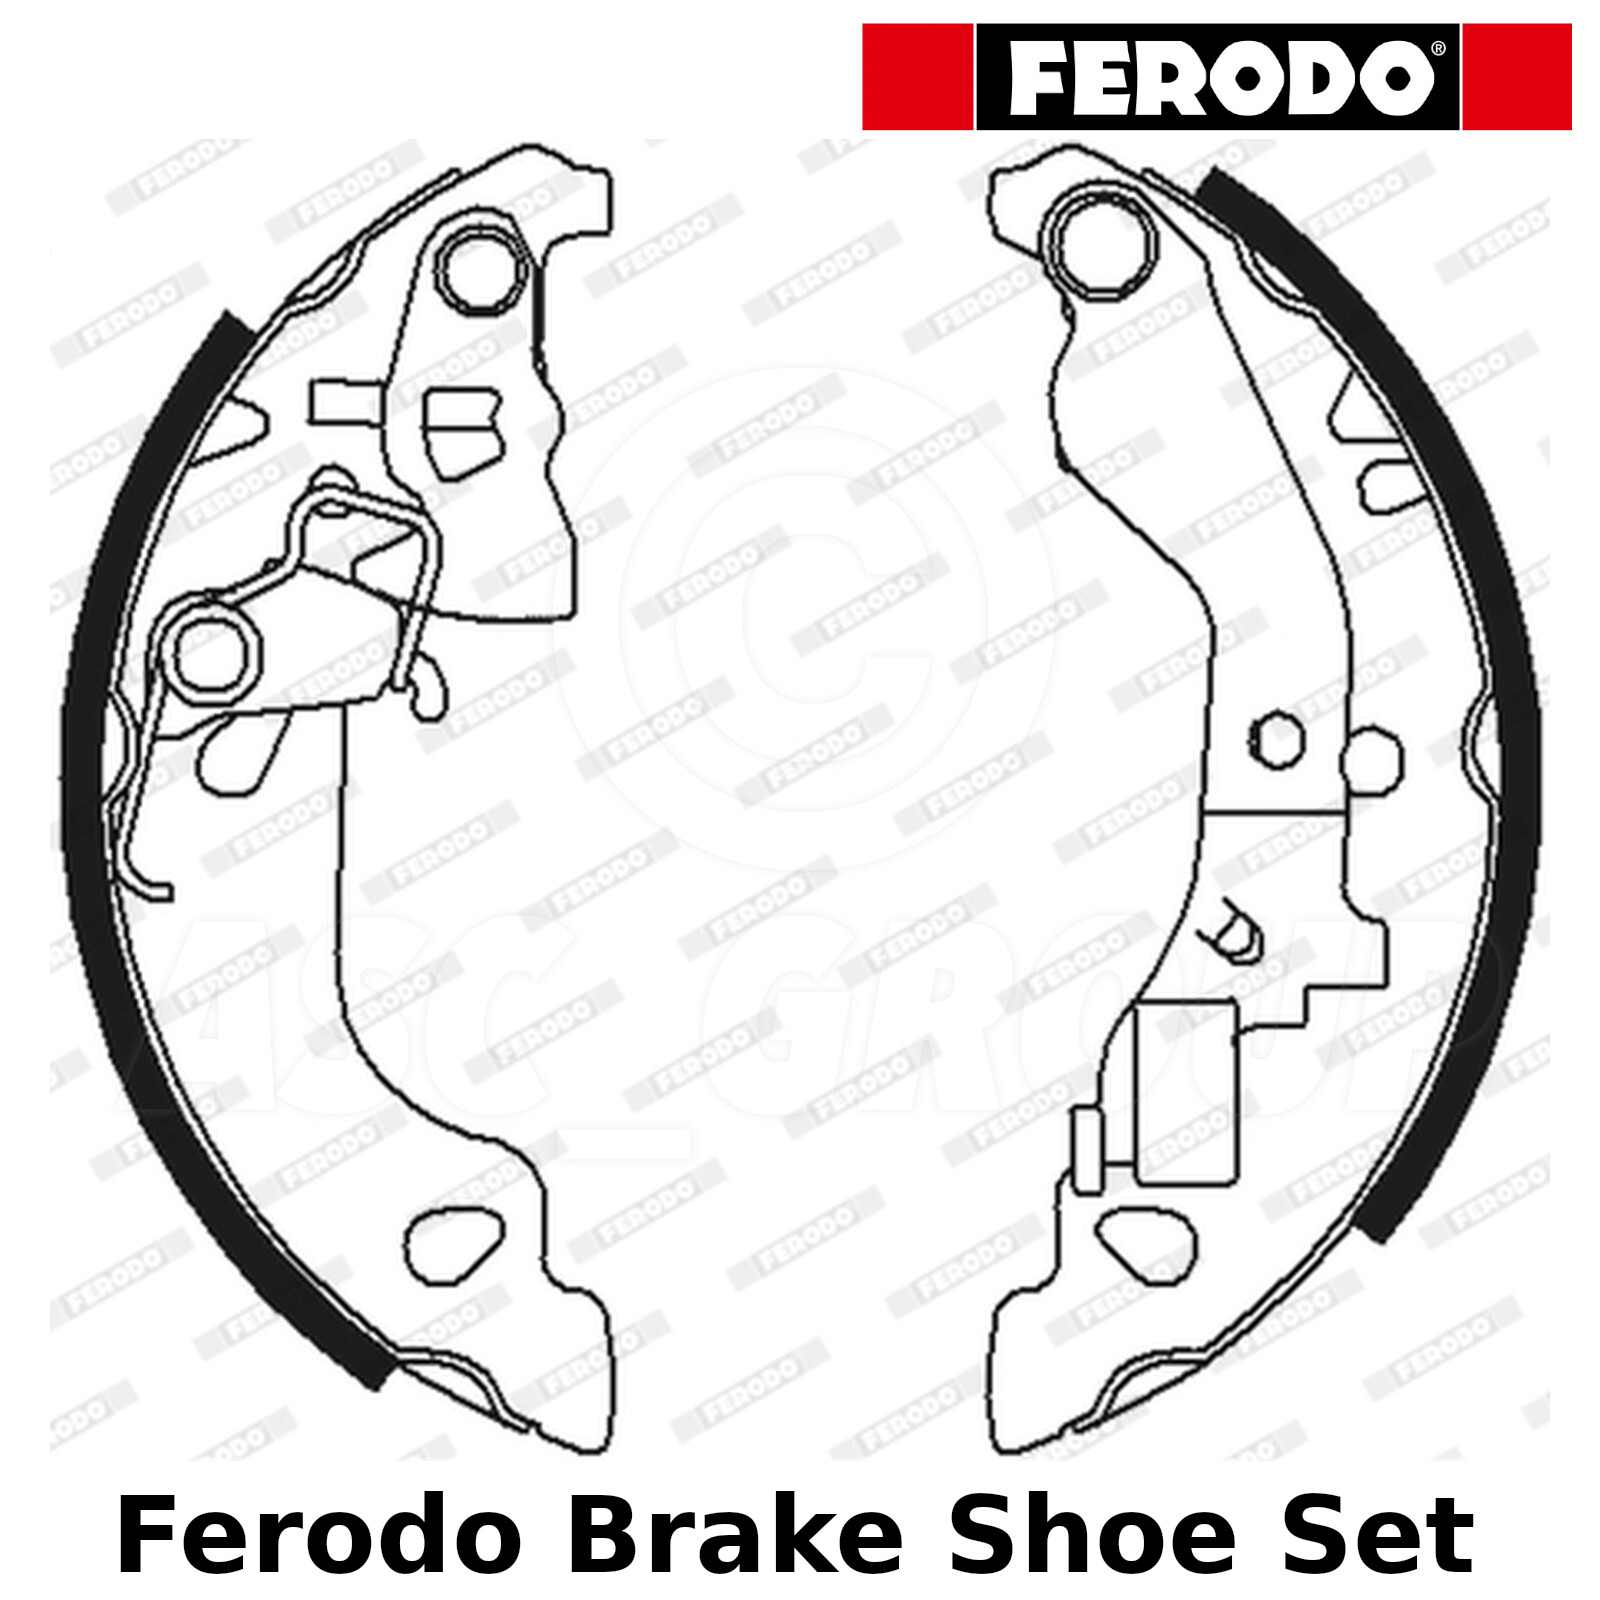 Ferodo Fiat Punto 1.2 Front Brake Discs And Pads Fit Bosch Brake System Replace